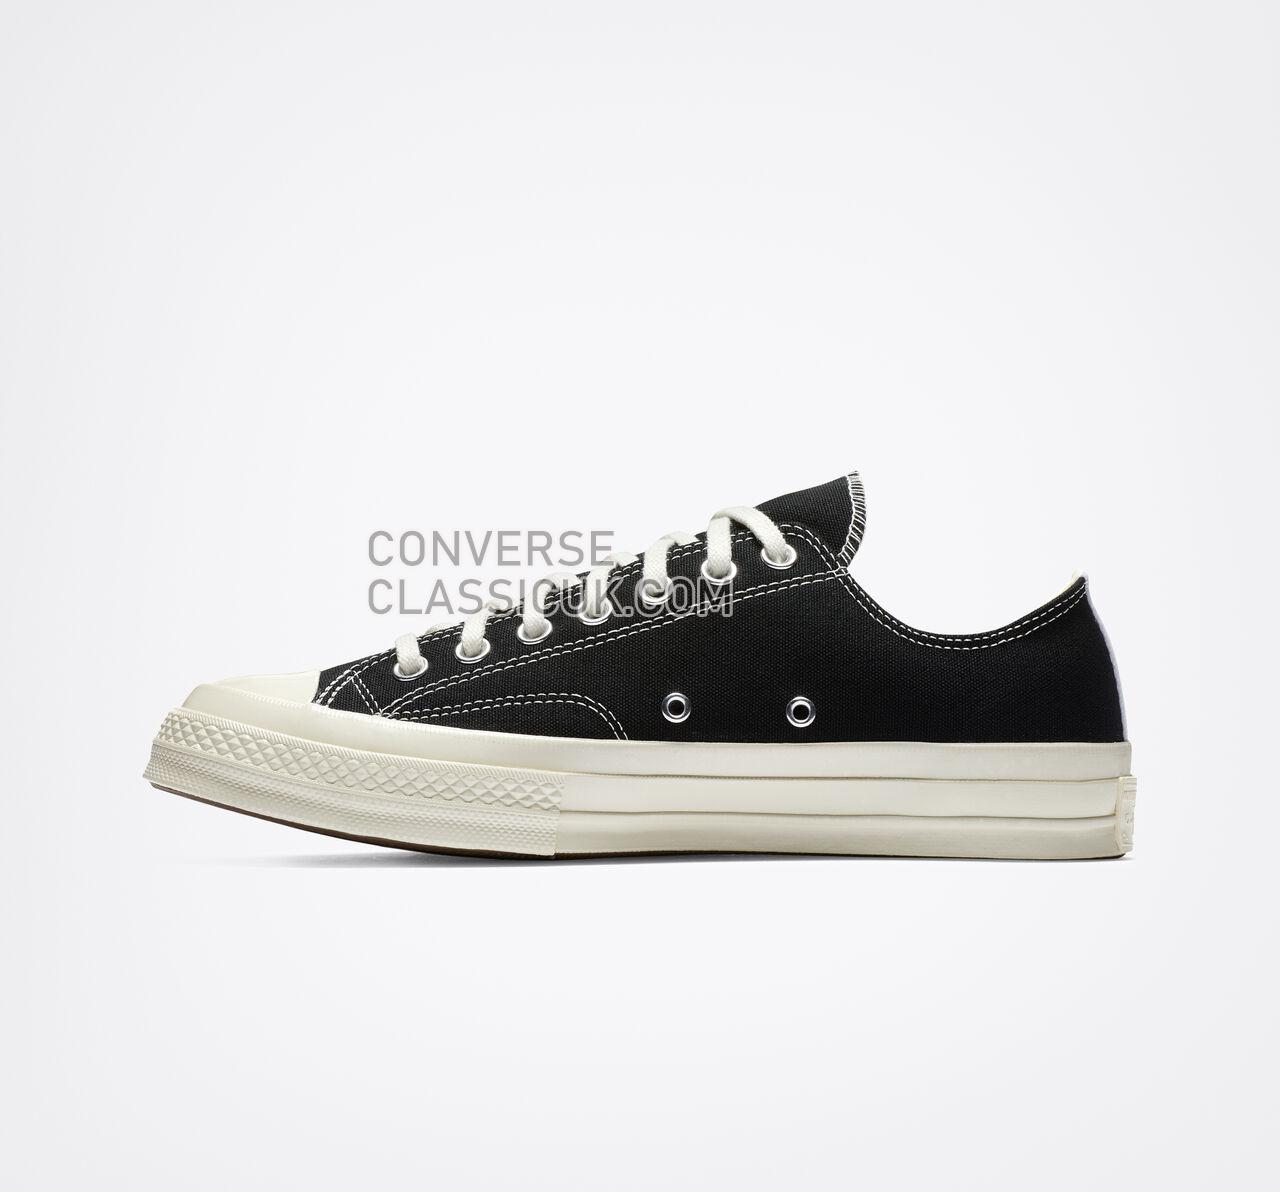 Converse x Comme des Garccedilons PLAY Chuck 70 Mens Womens Unisex 150206C Black/White/High Risk Red Shoes